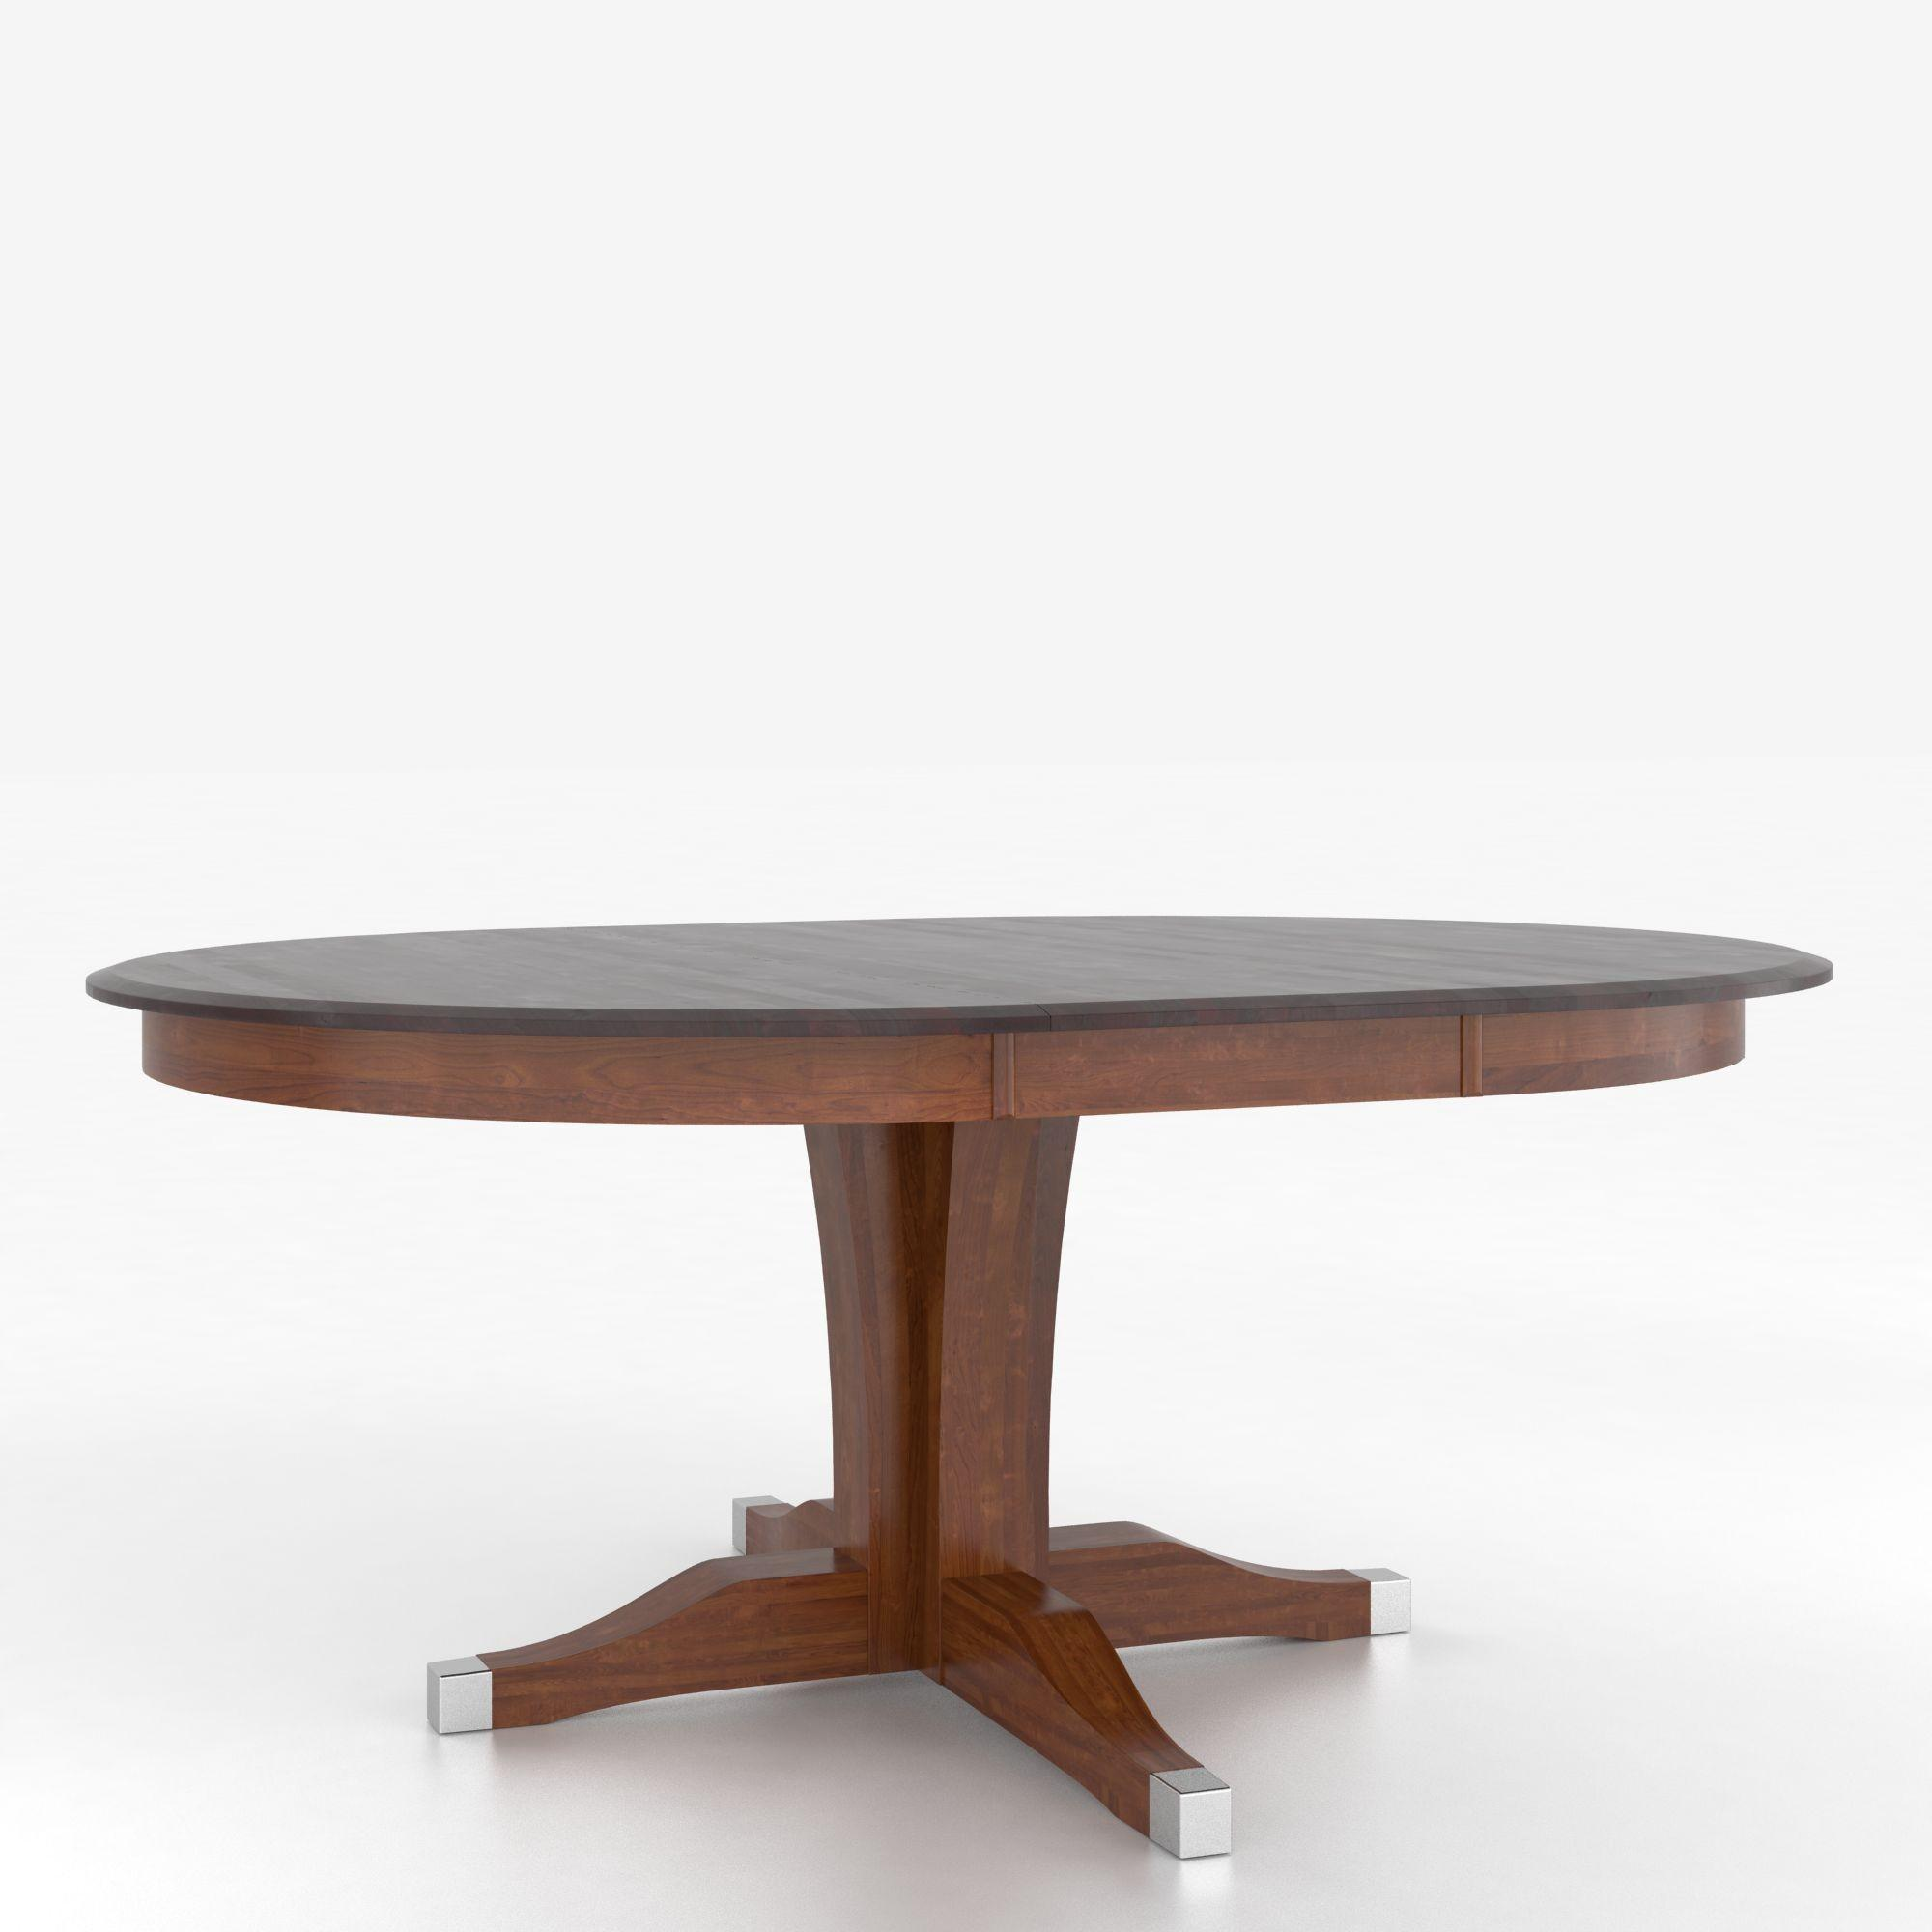 Canadel Custom Dining Tables Customizable Round Table With Pedestal Belfort Furniture Dining